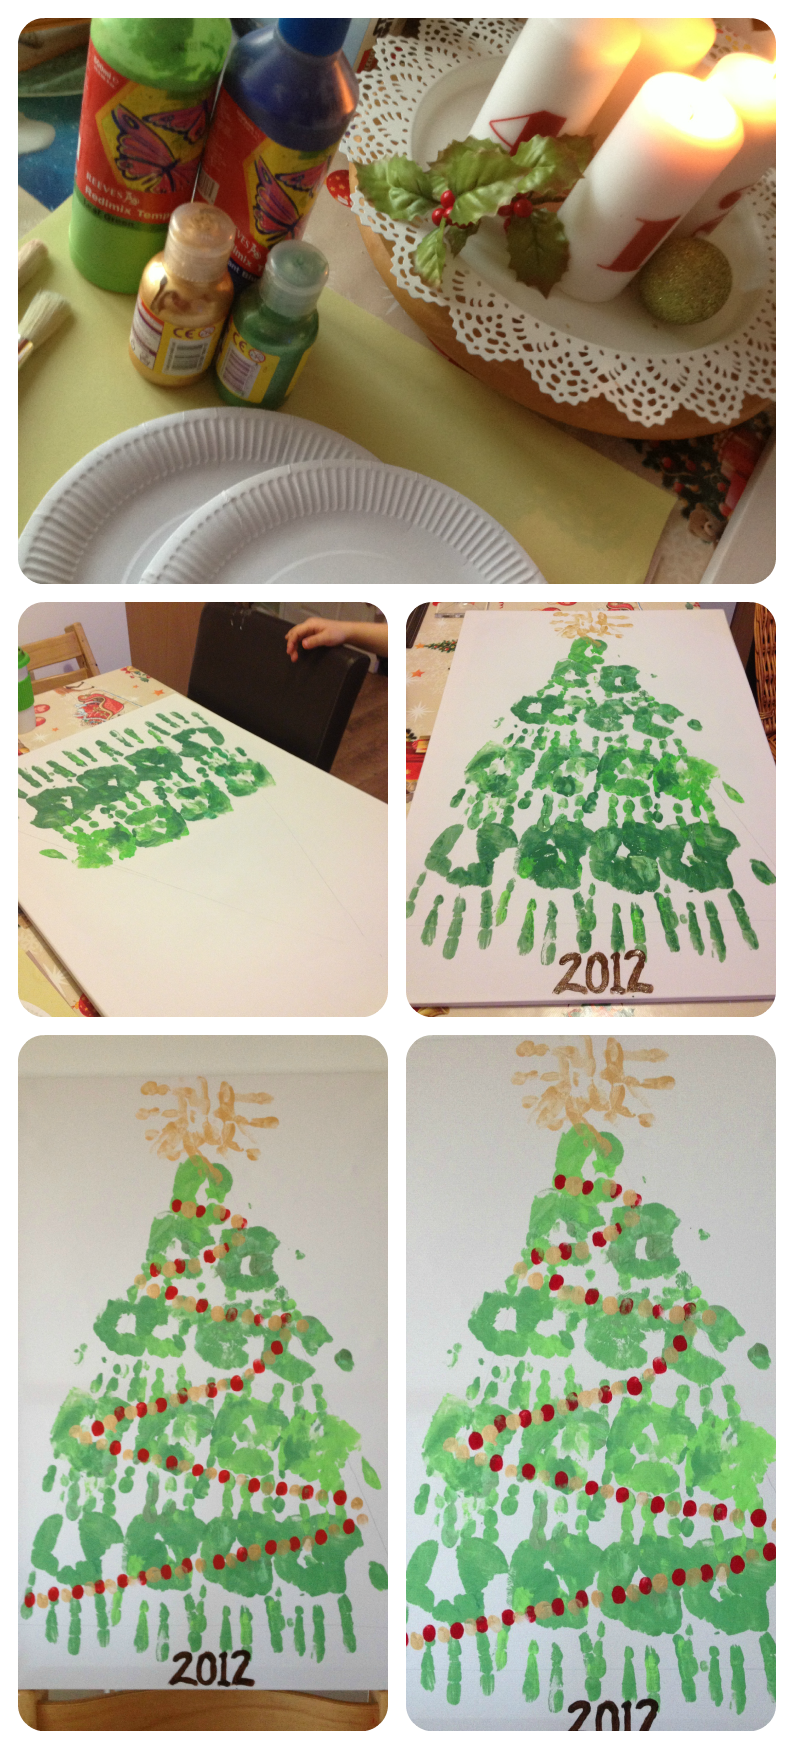 Paper christmas decorations to print - Febualous Festive Family Hand Print Christmas Tree Canvass Craft To Do With All The Family And